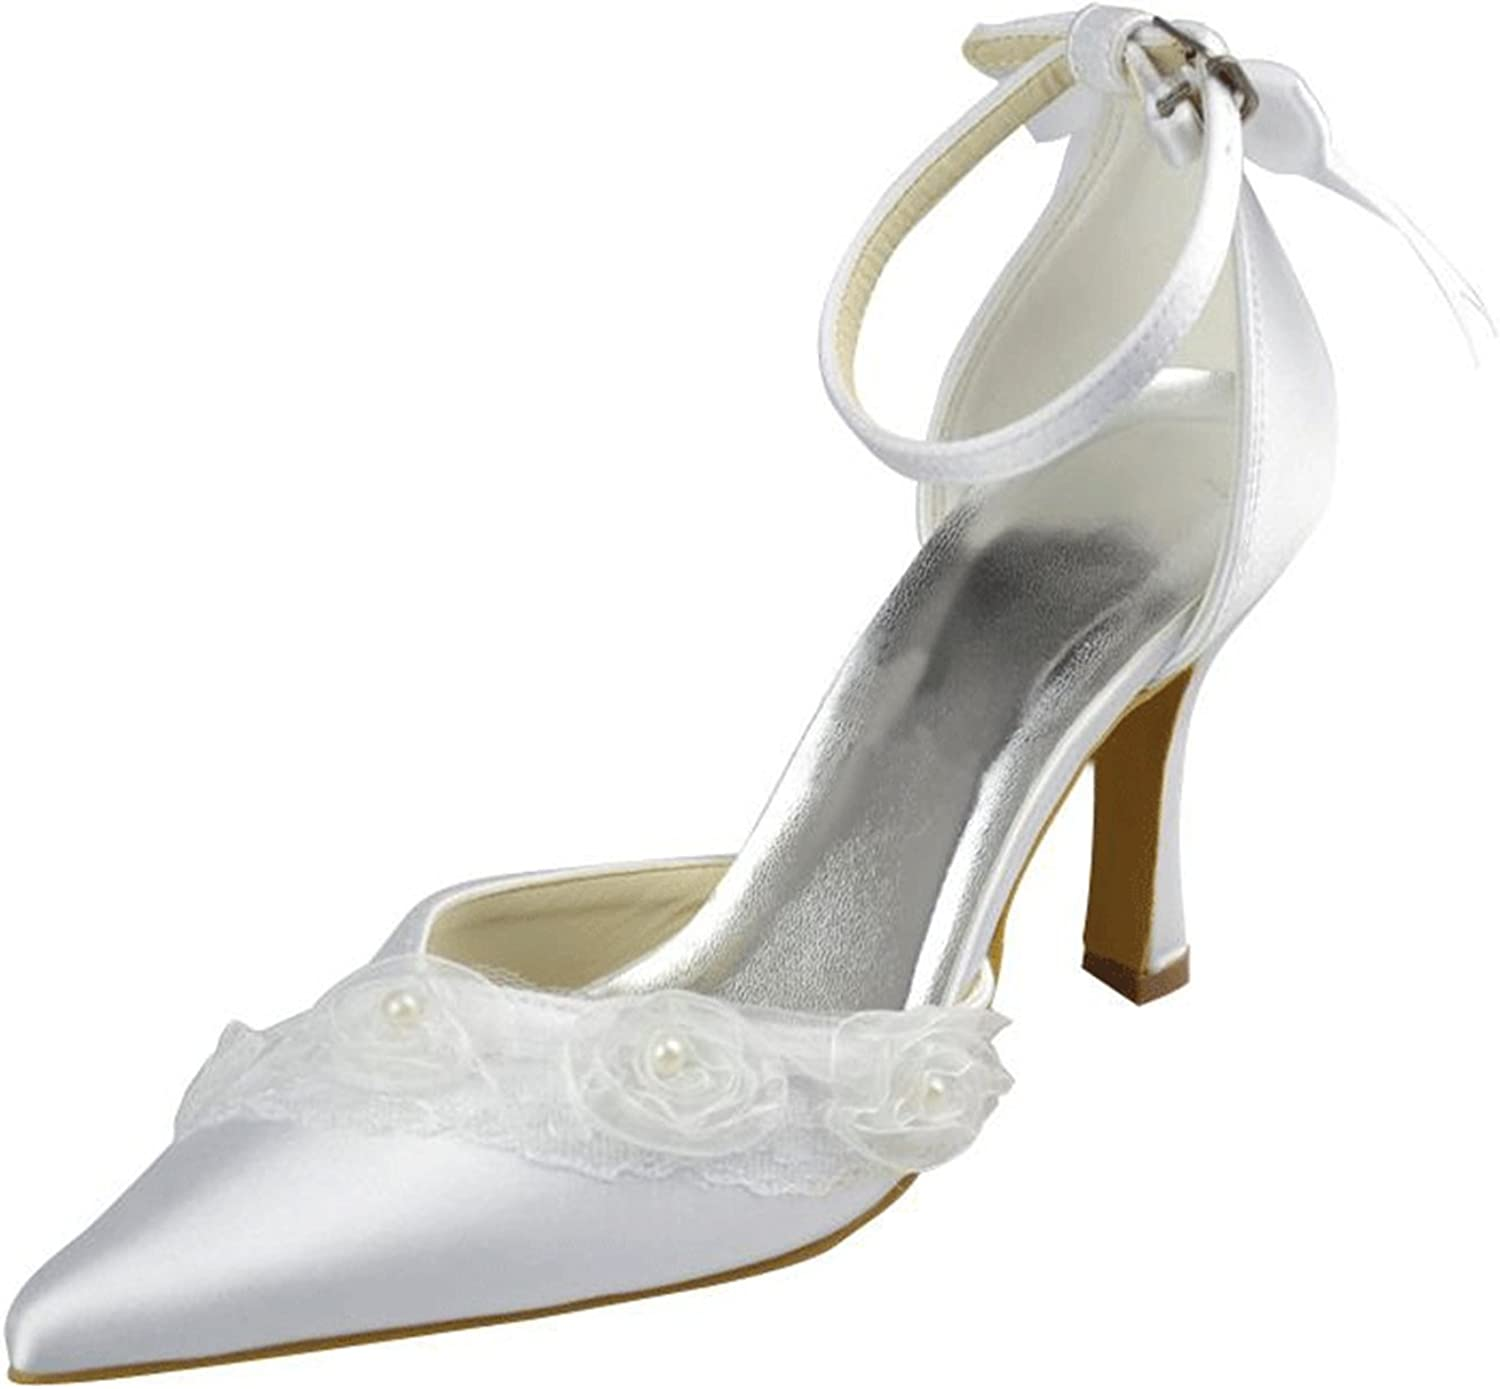 Kevin Fashion MZ1242 Women's Flowers Satin Bridal Wedding Formal Party Evening Prom Pumps shoes